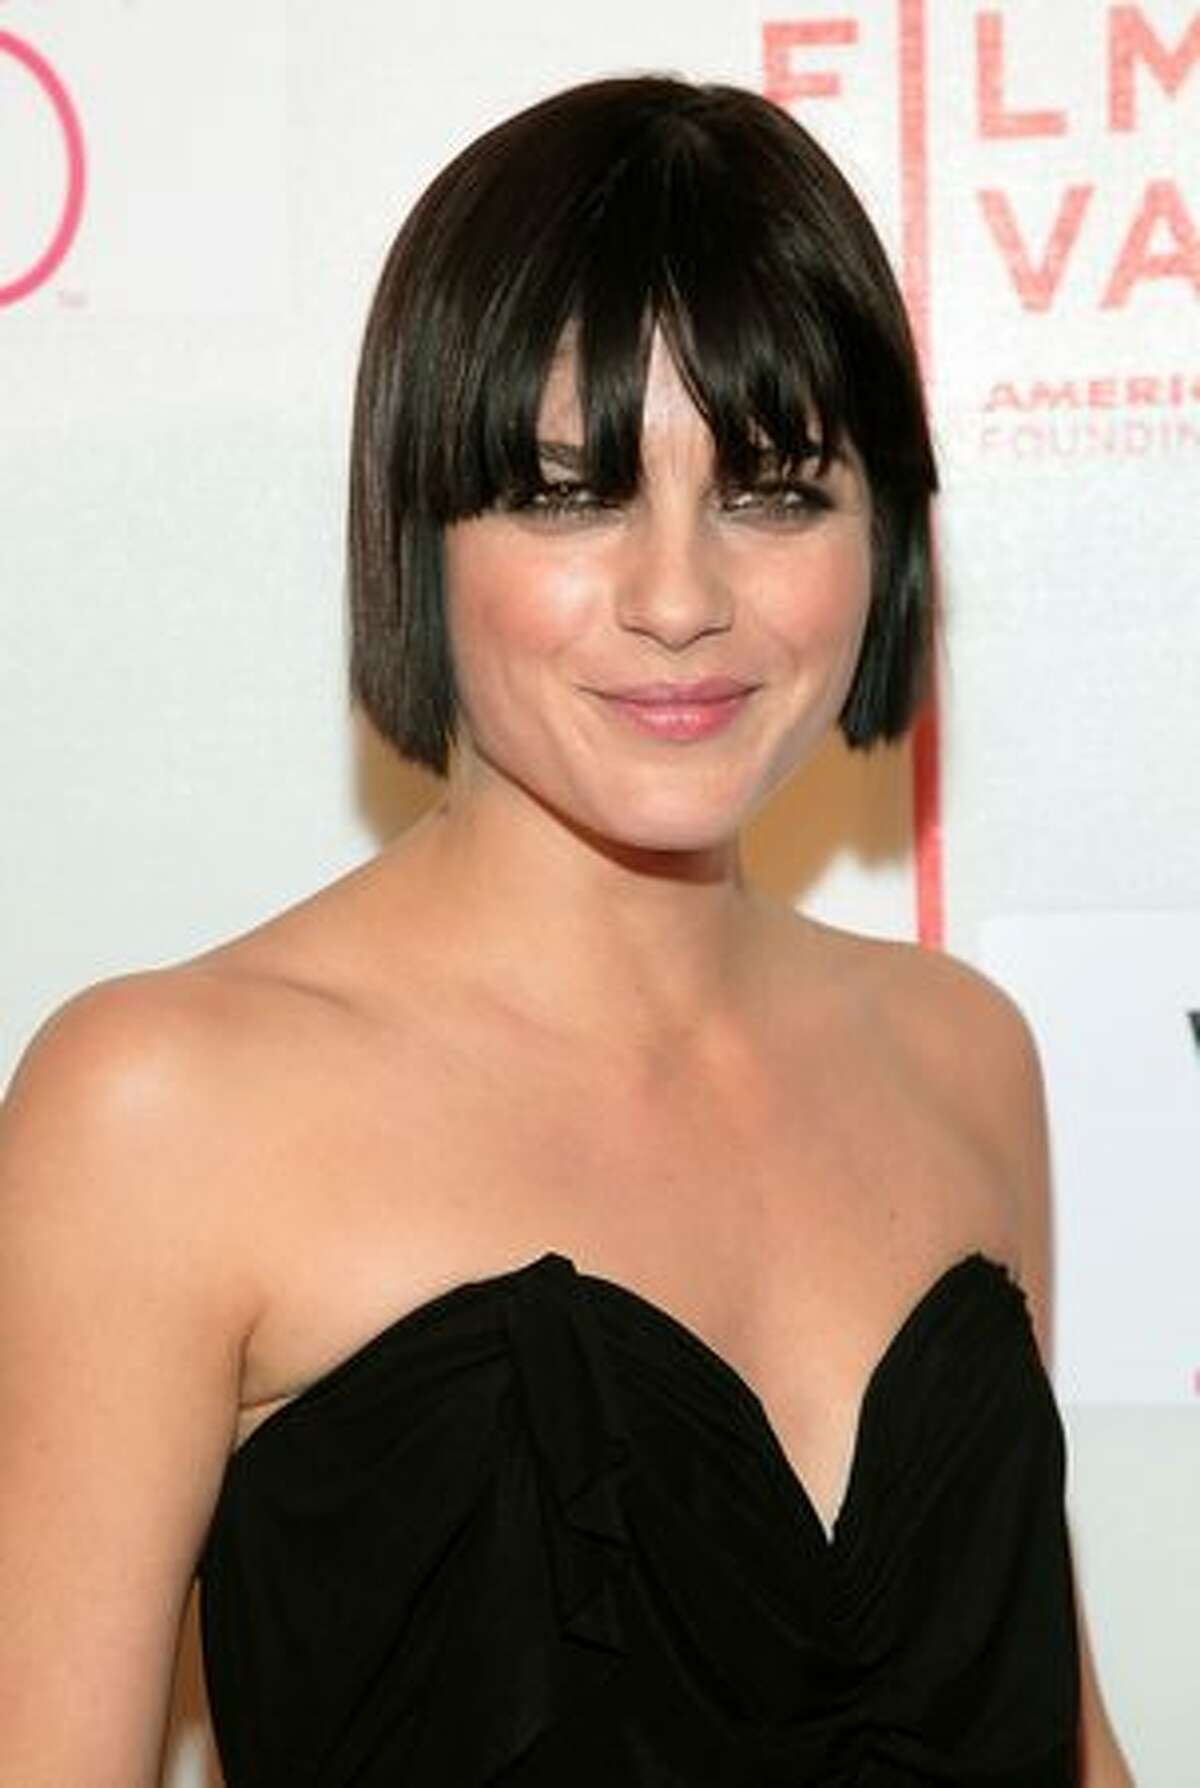 Actress Selma Blair attends the premiere of